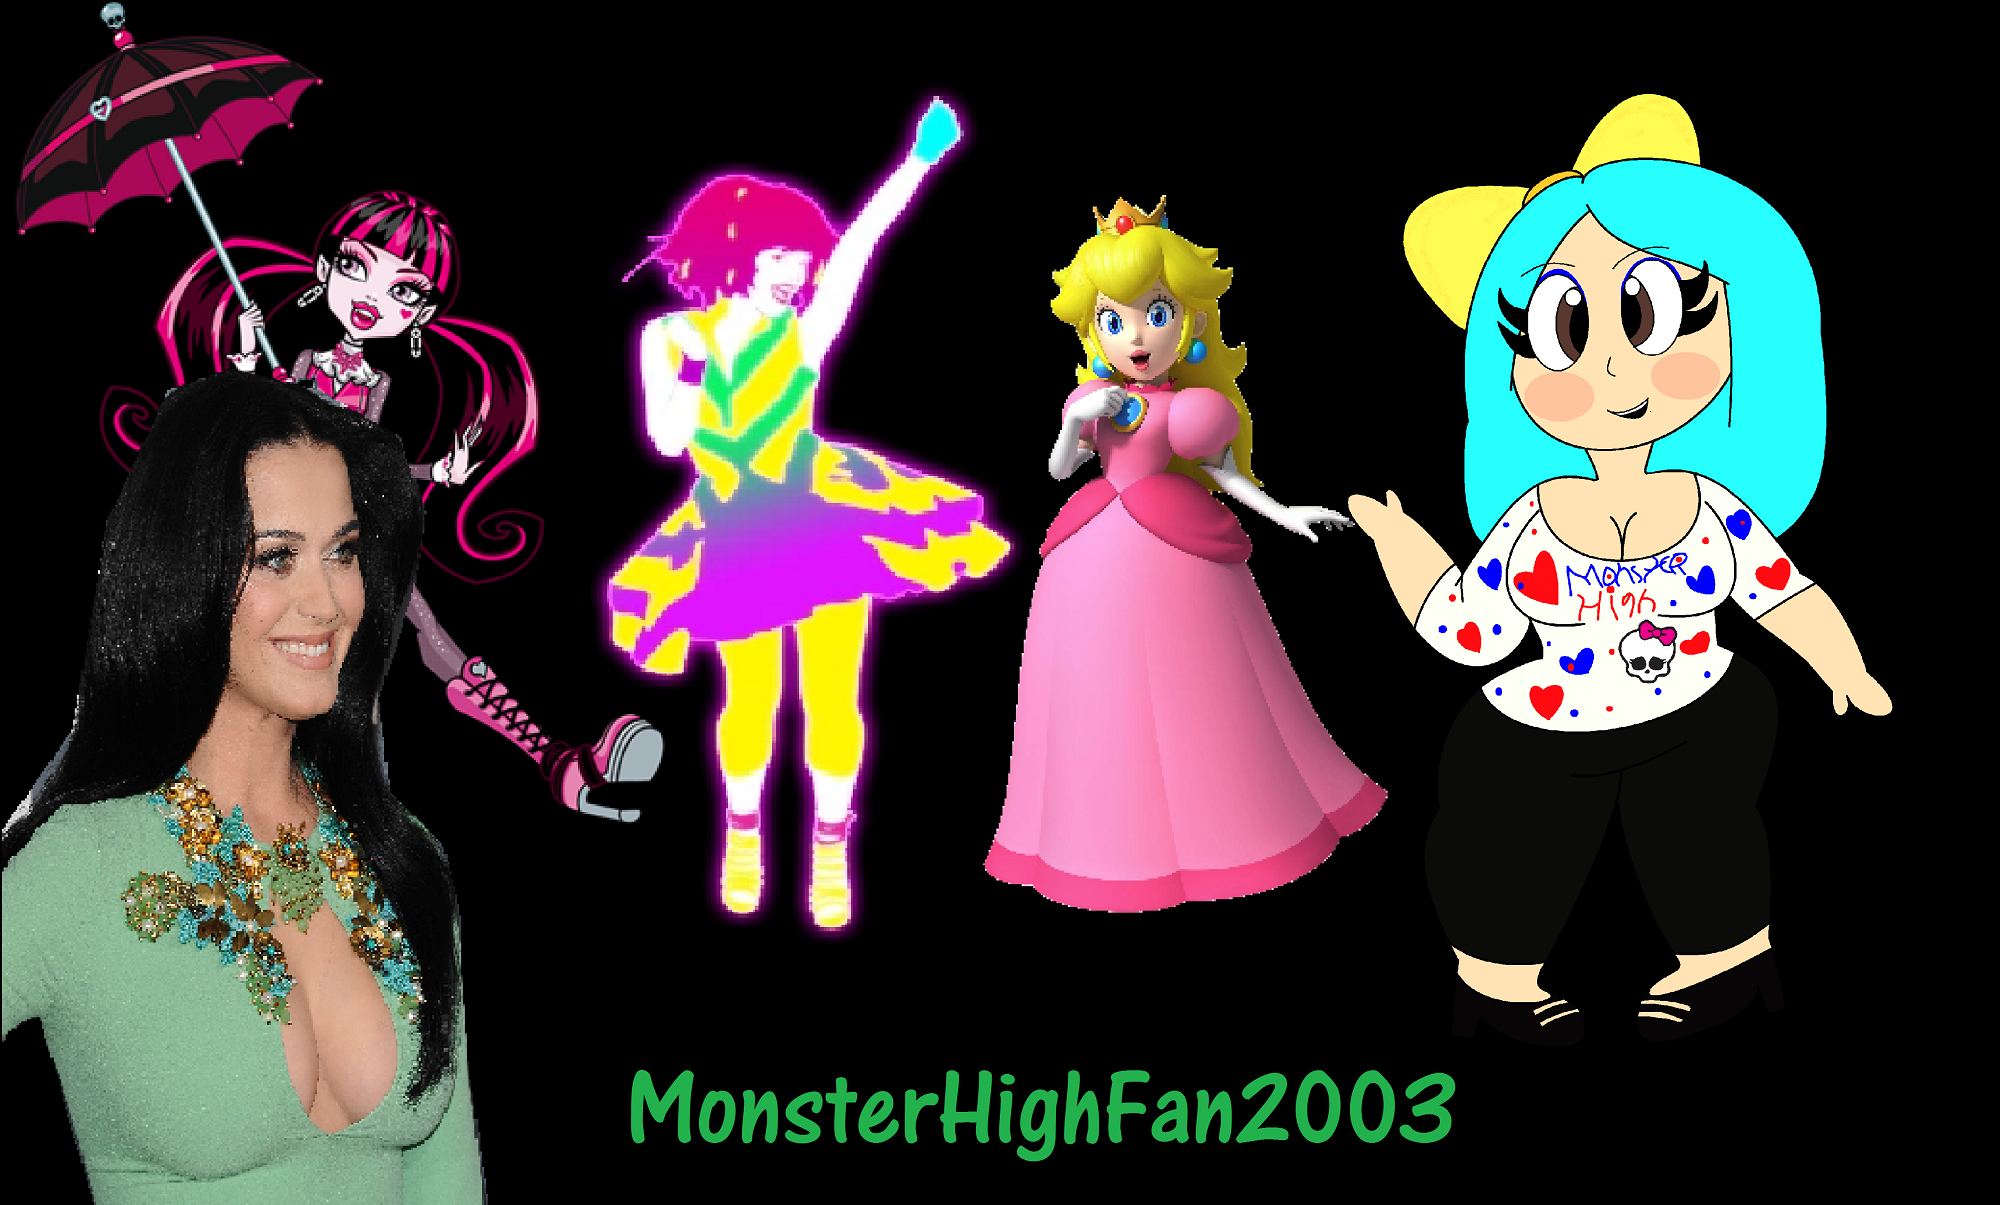 MonsterHighFan2003's Profile Picture